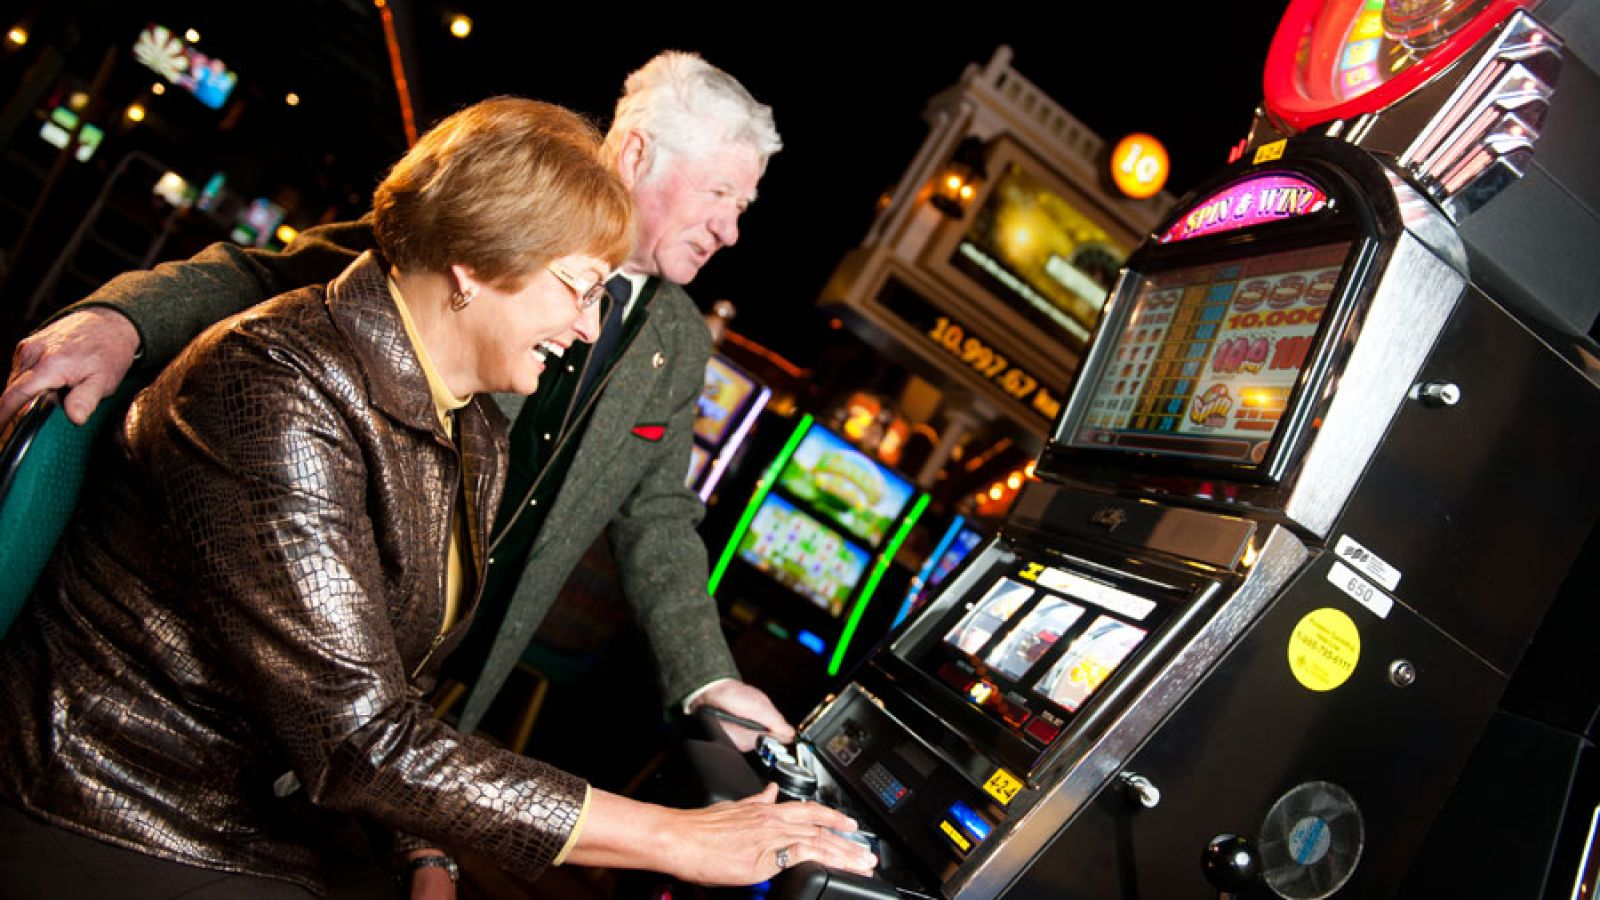 The property offers 239 slot machines.